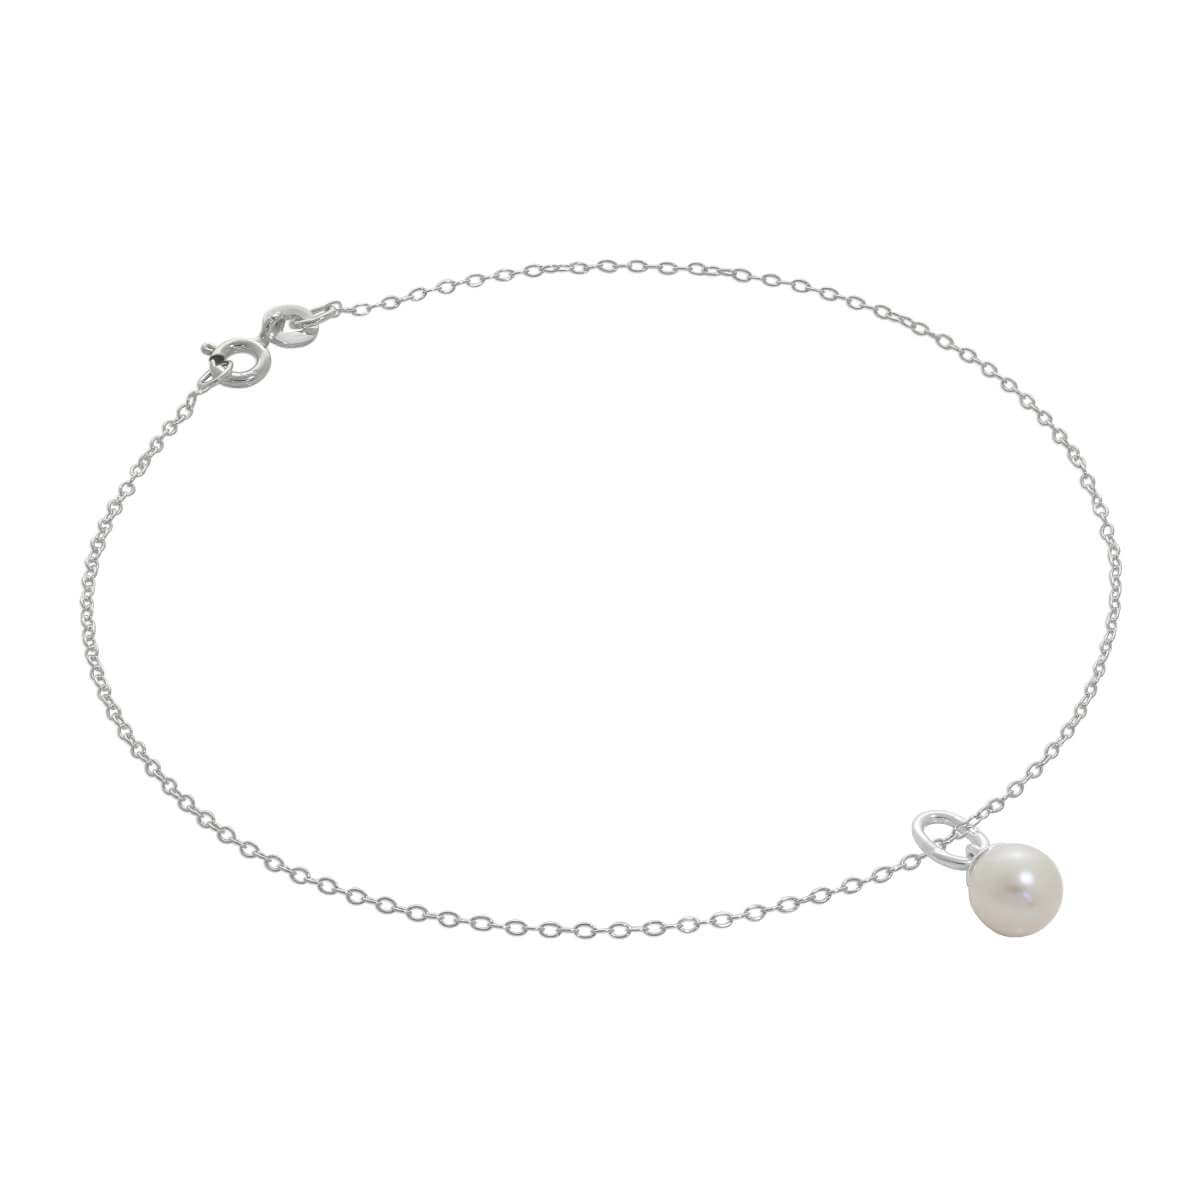 Fine Sterling Silver Belcher Anklet with Pearl Charm - 10 Inches